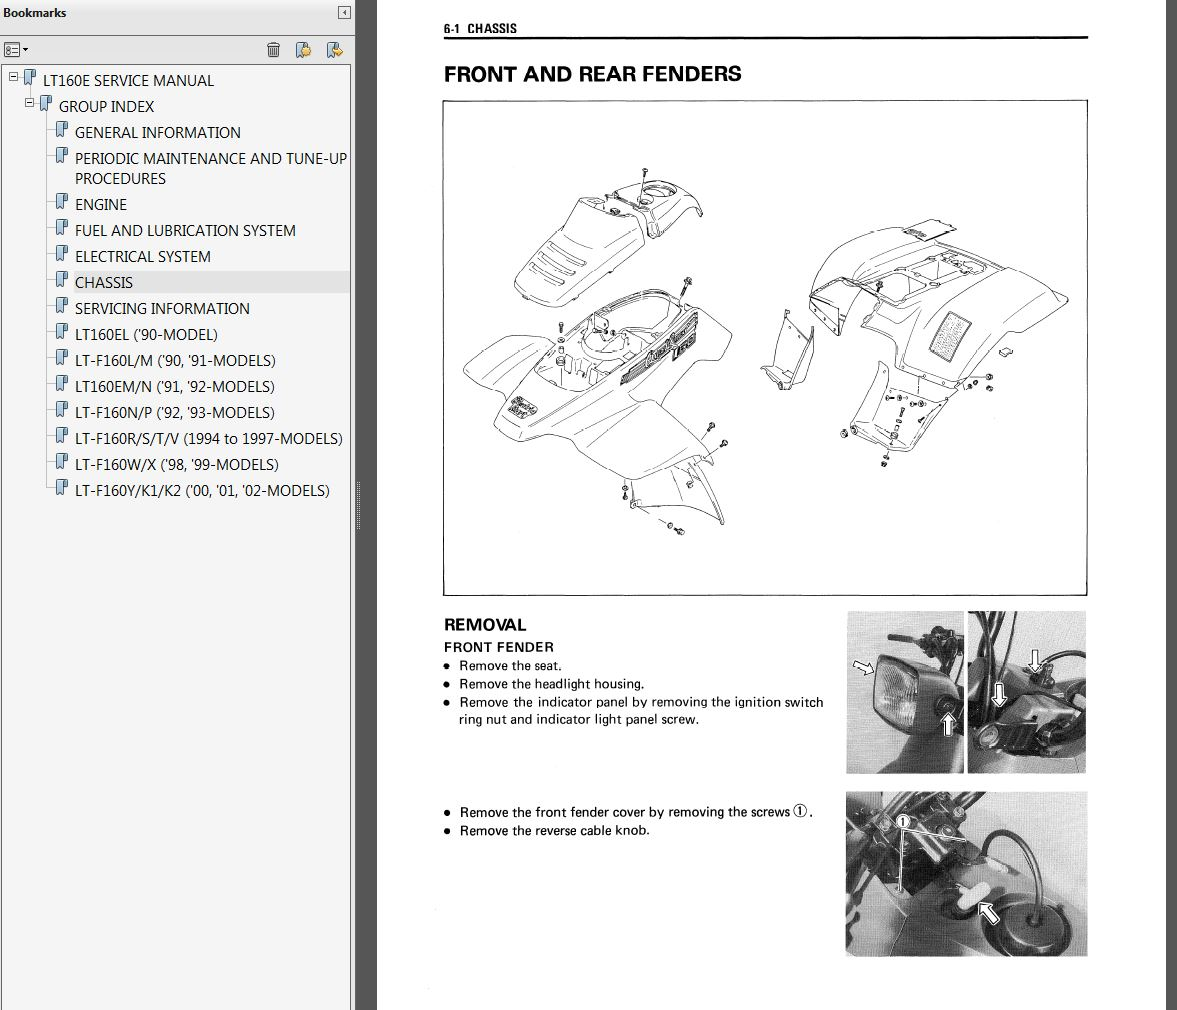 Suzuki Quadrunner Manual Pdf